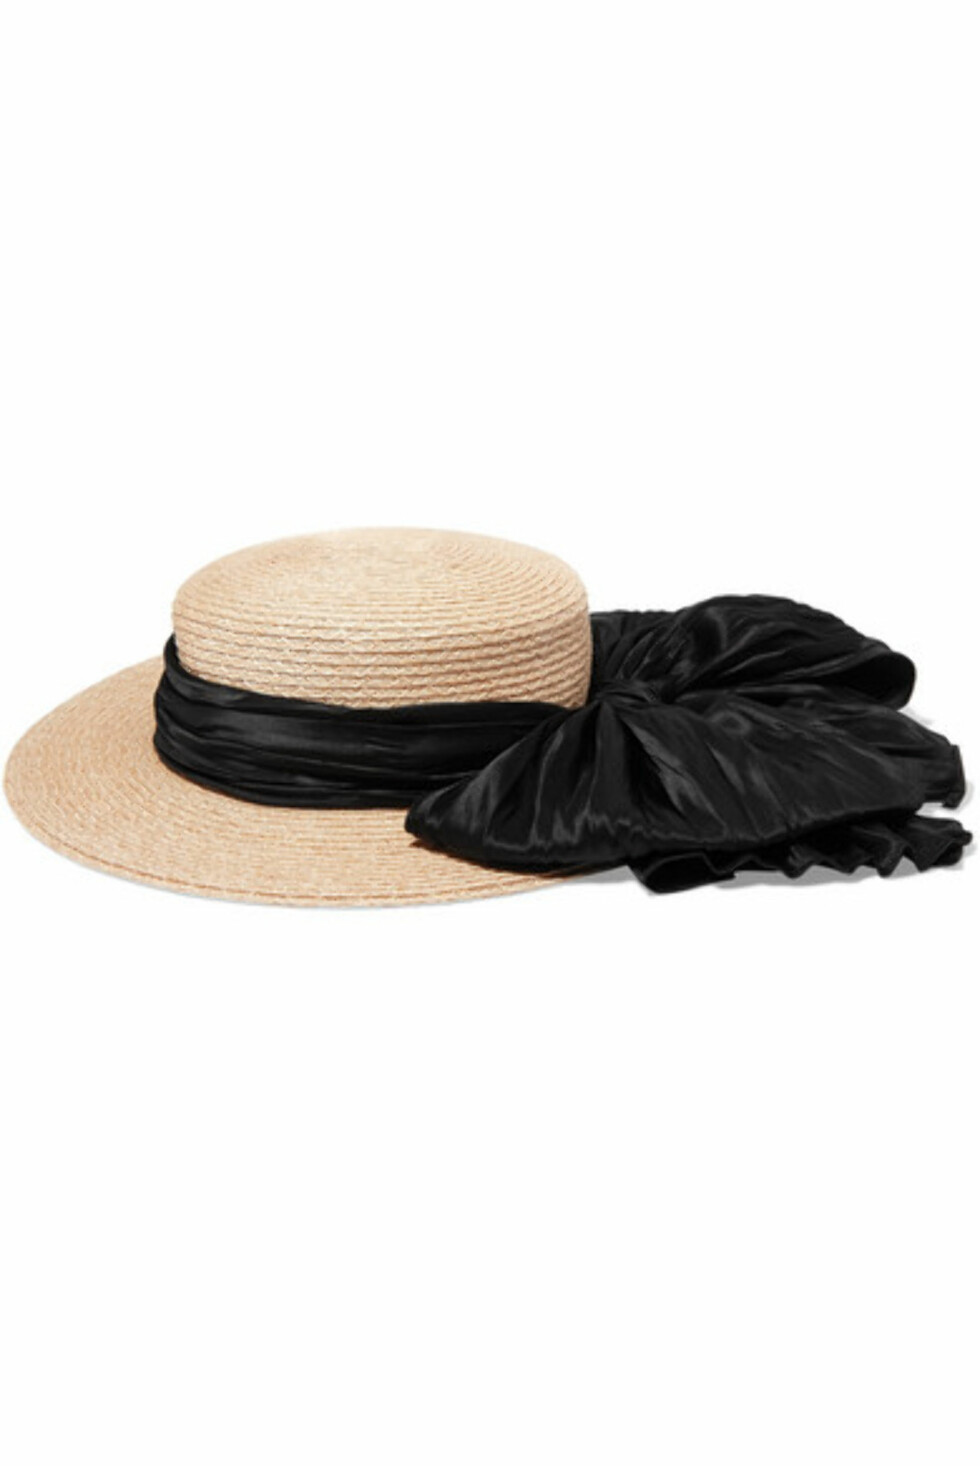 Hatt fra Eugenia Kim |300,-| https://www.net-a-porter.com/no/en/product/995878/eugenia_kim/brigitte-satin-trimmed-hemp-boater